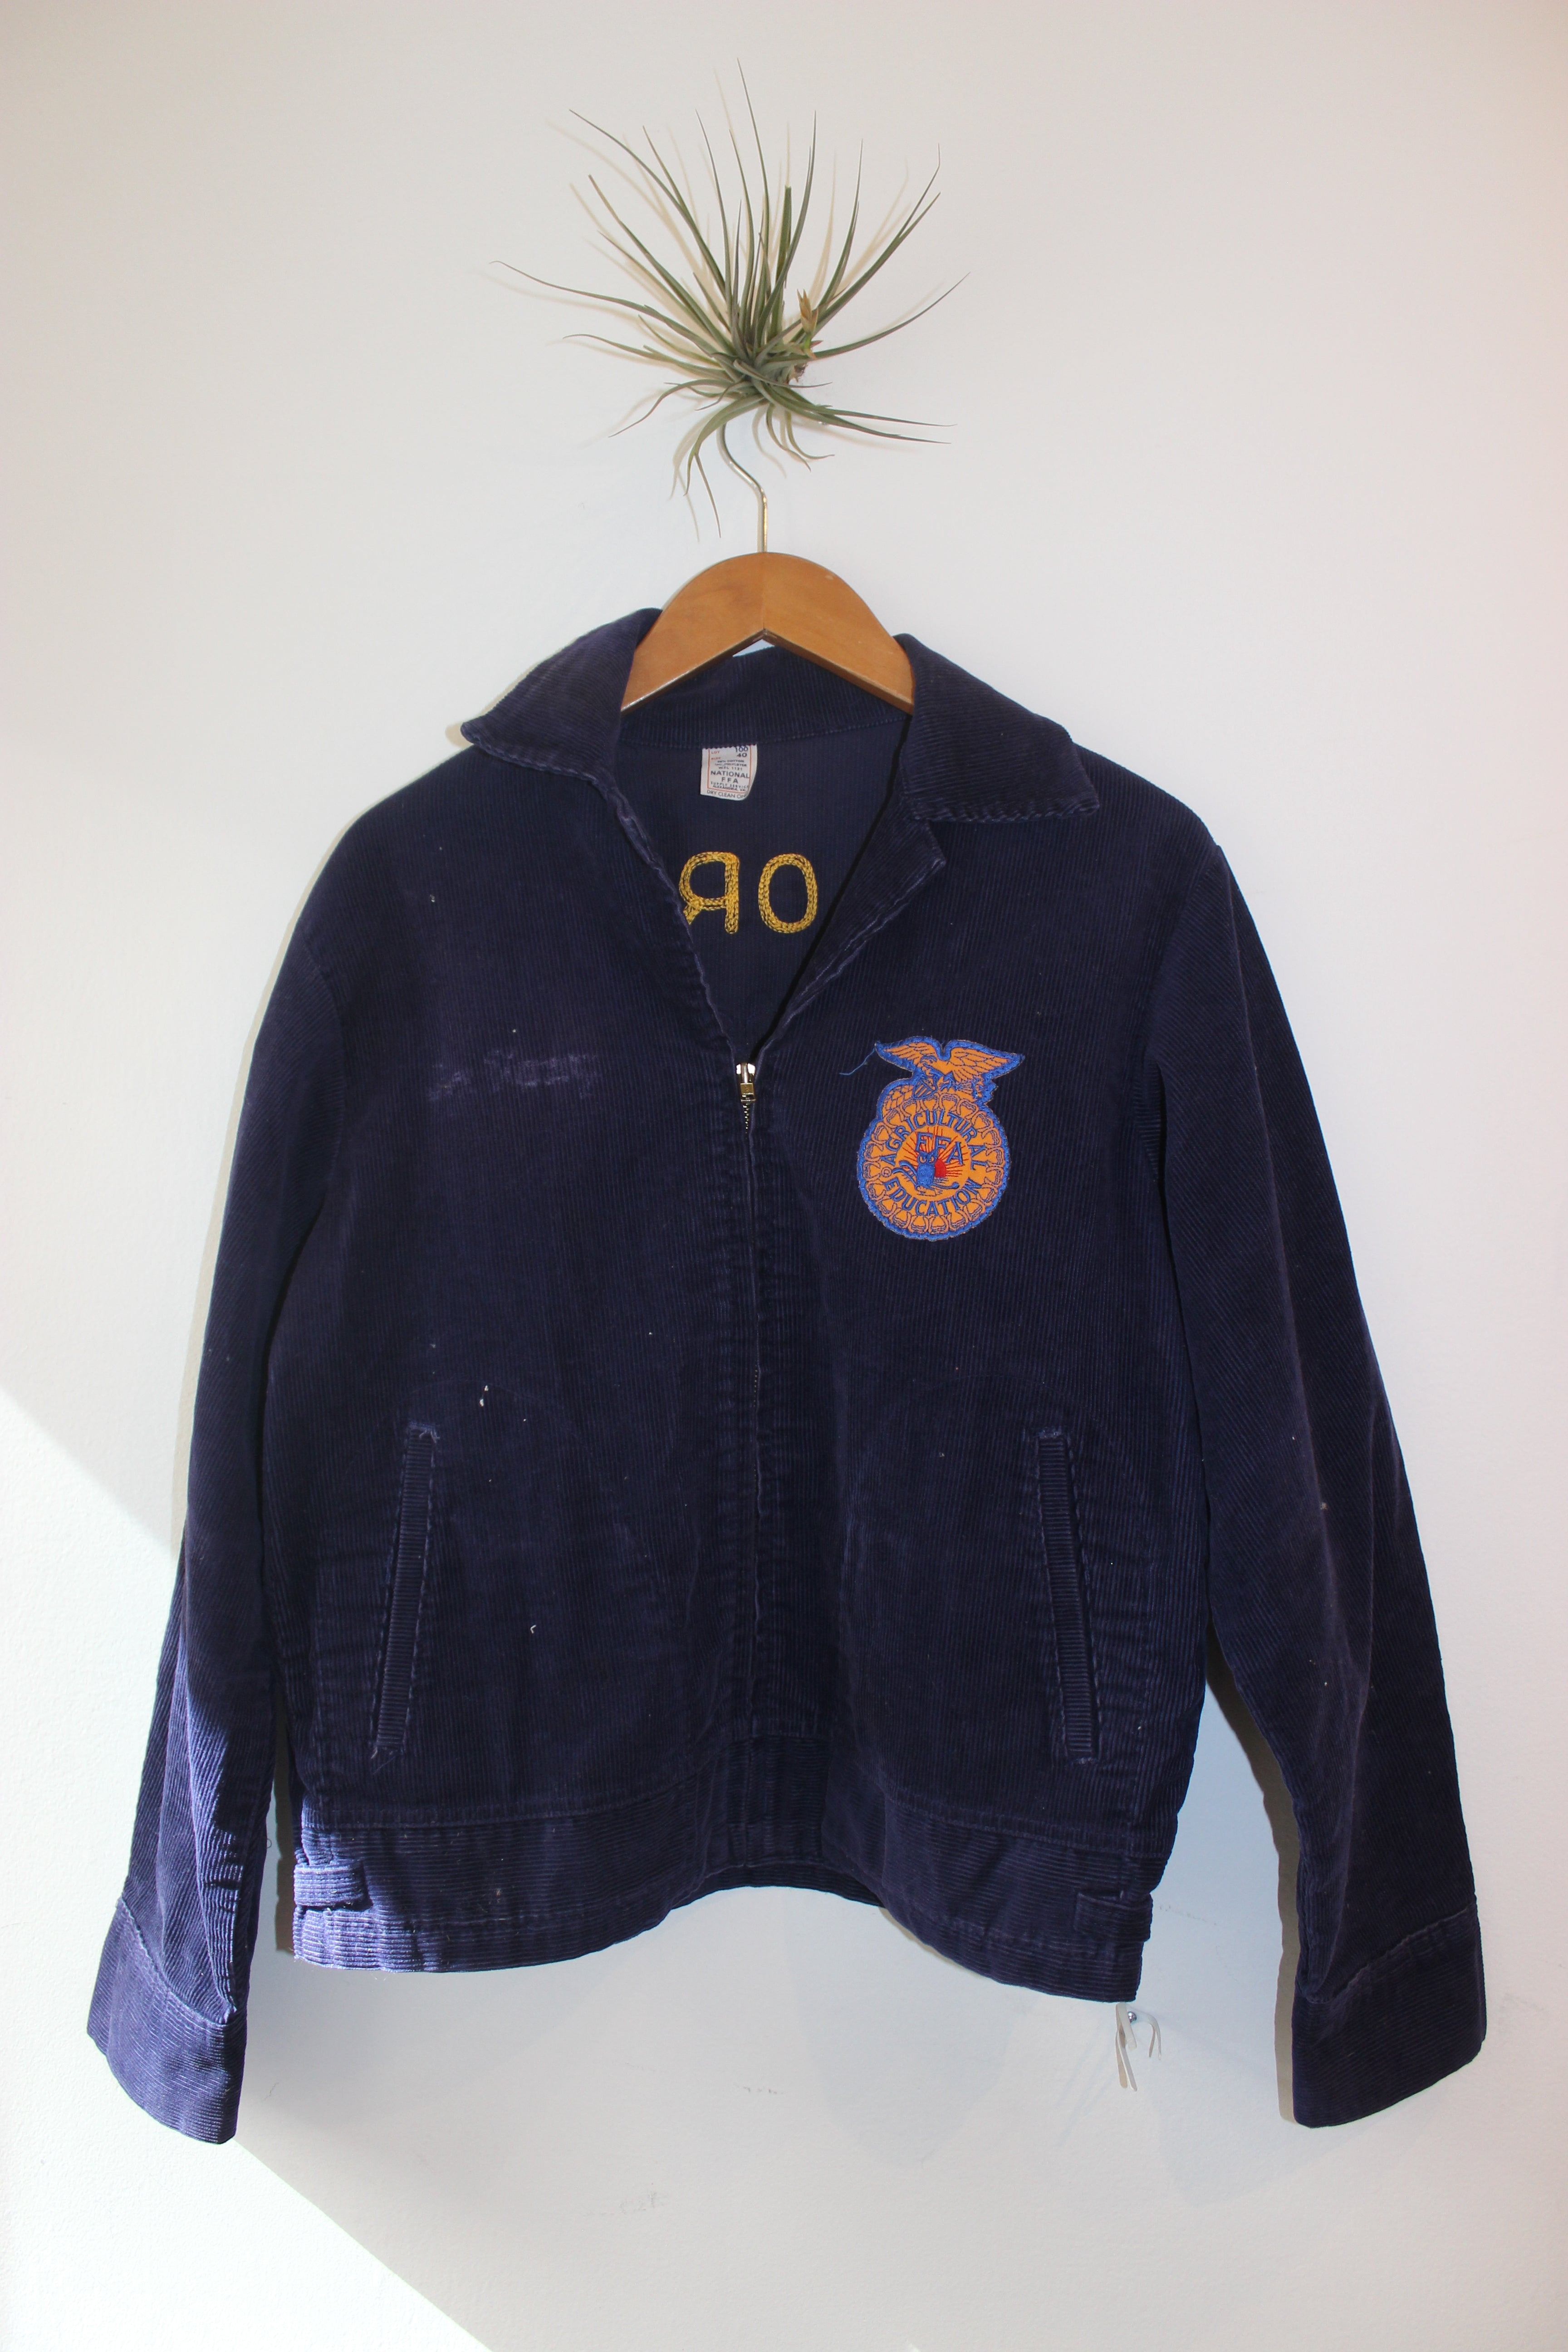 Vintage Colorado Agriculture Jacket